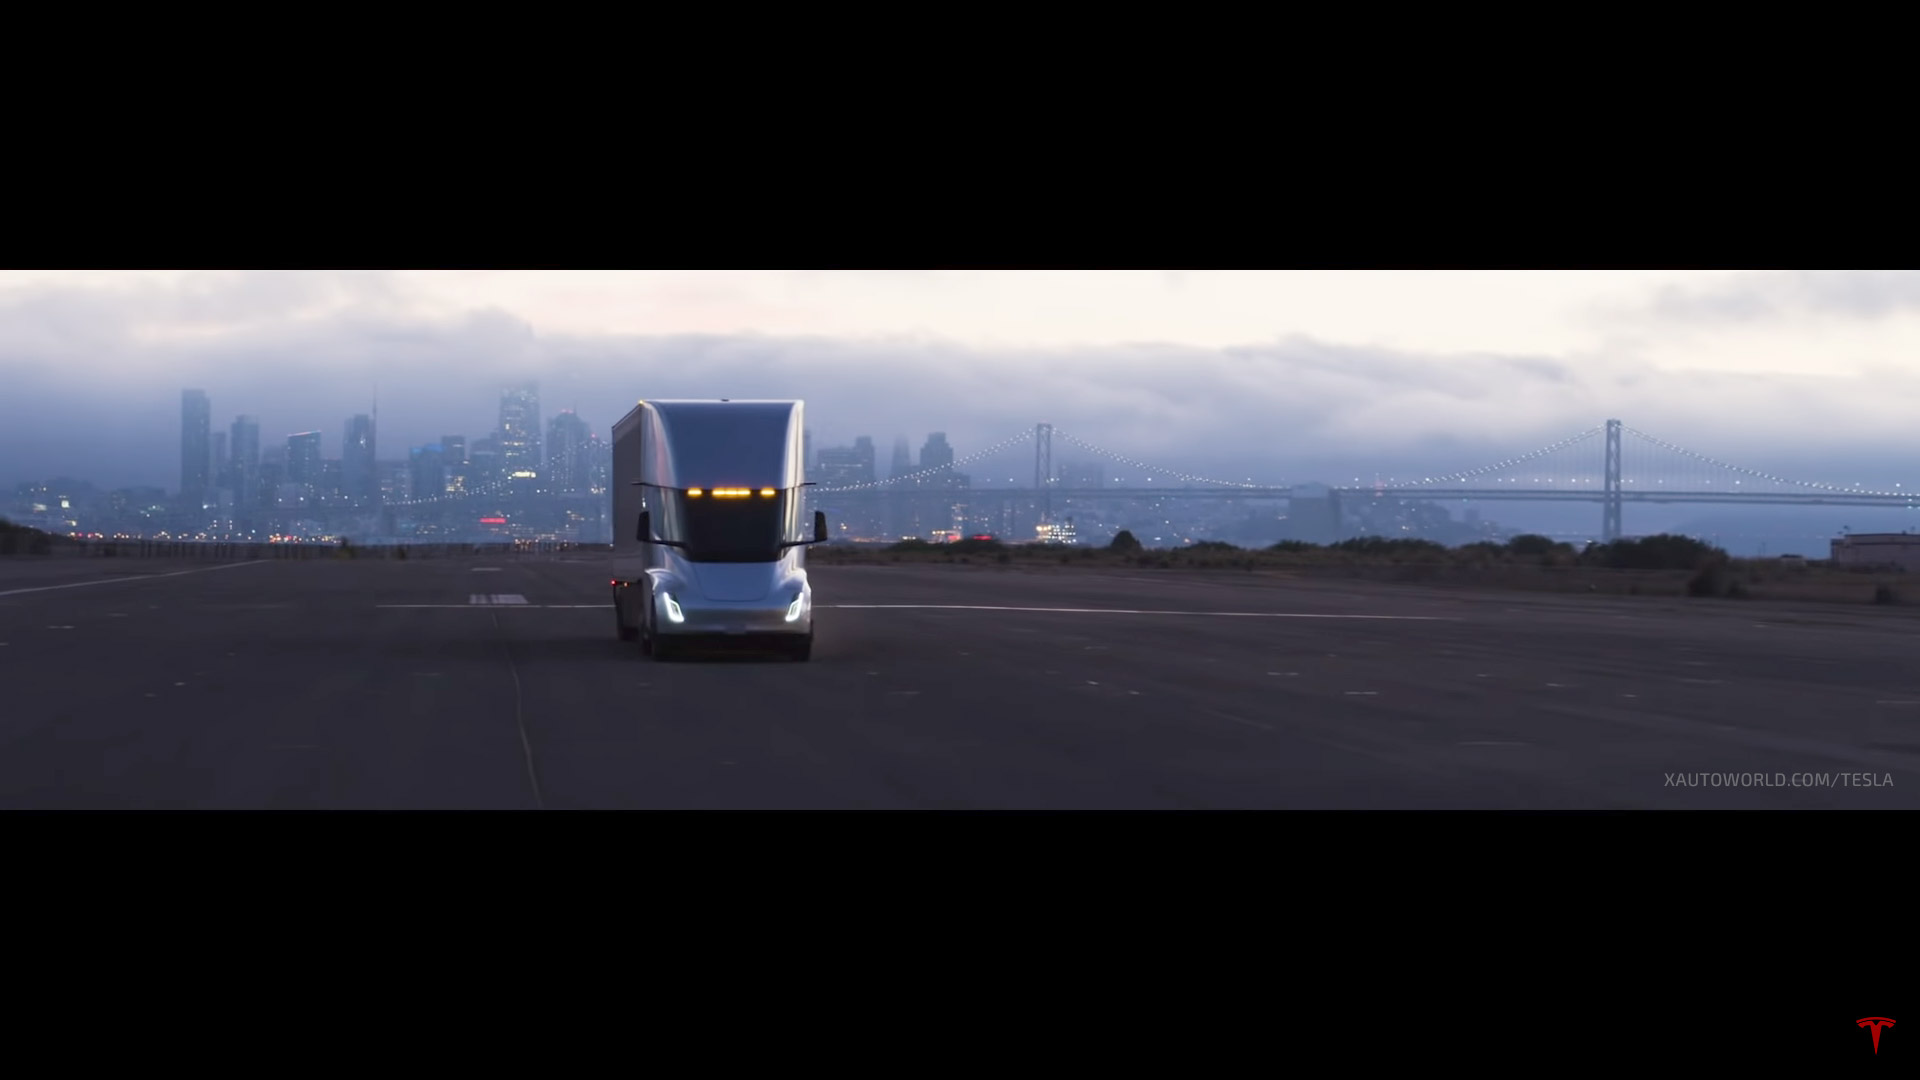 Tesla Semi truck teaser image from the Model Y unveil event